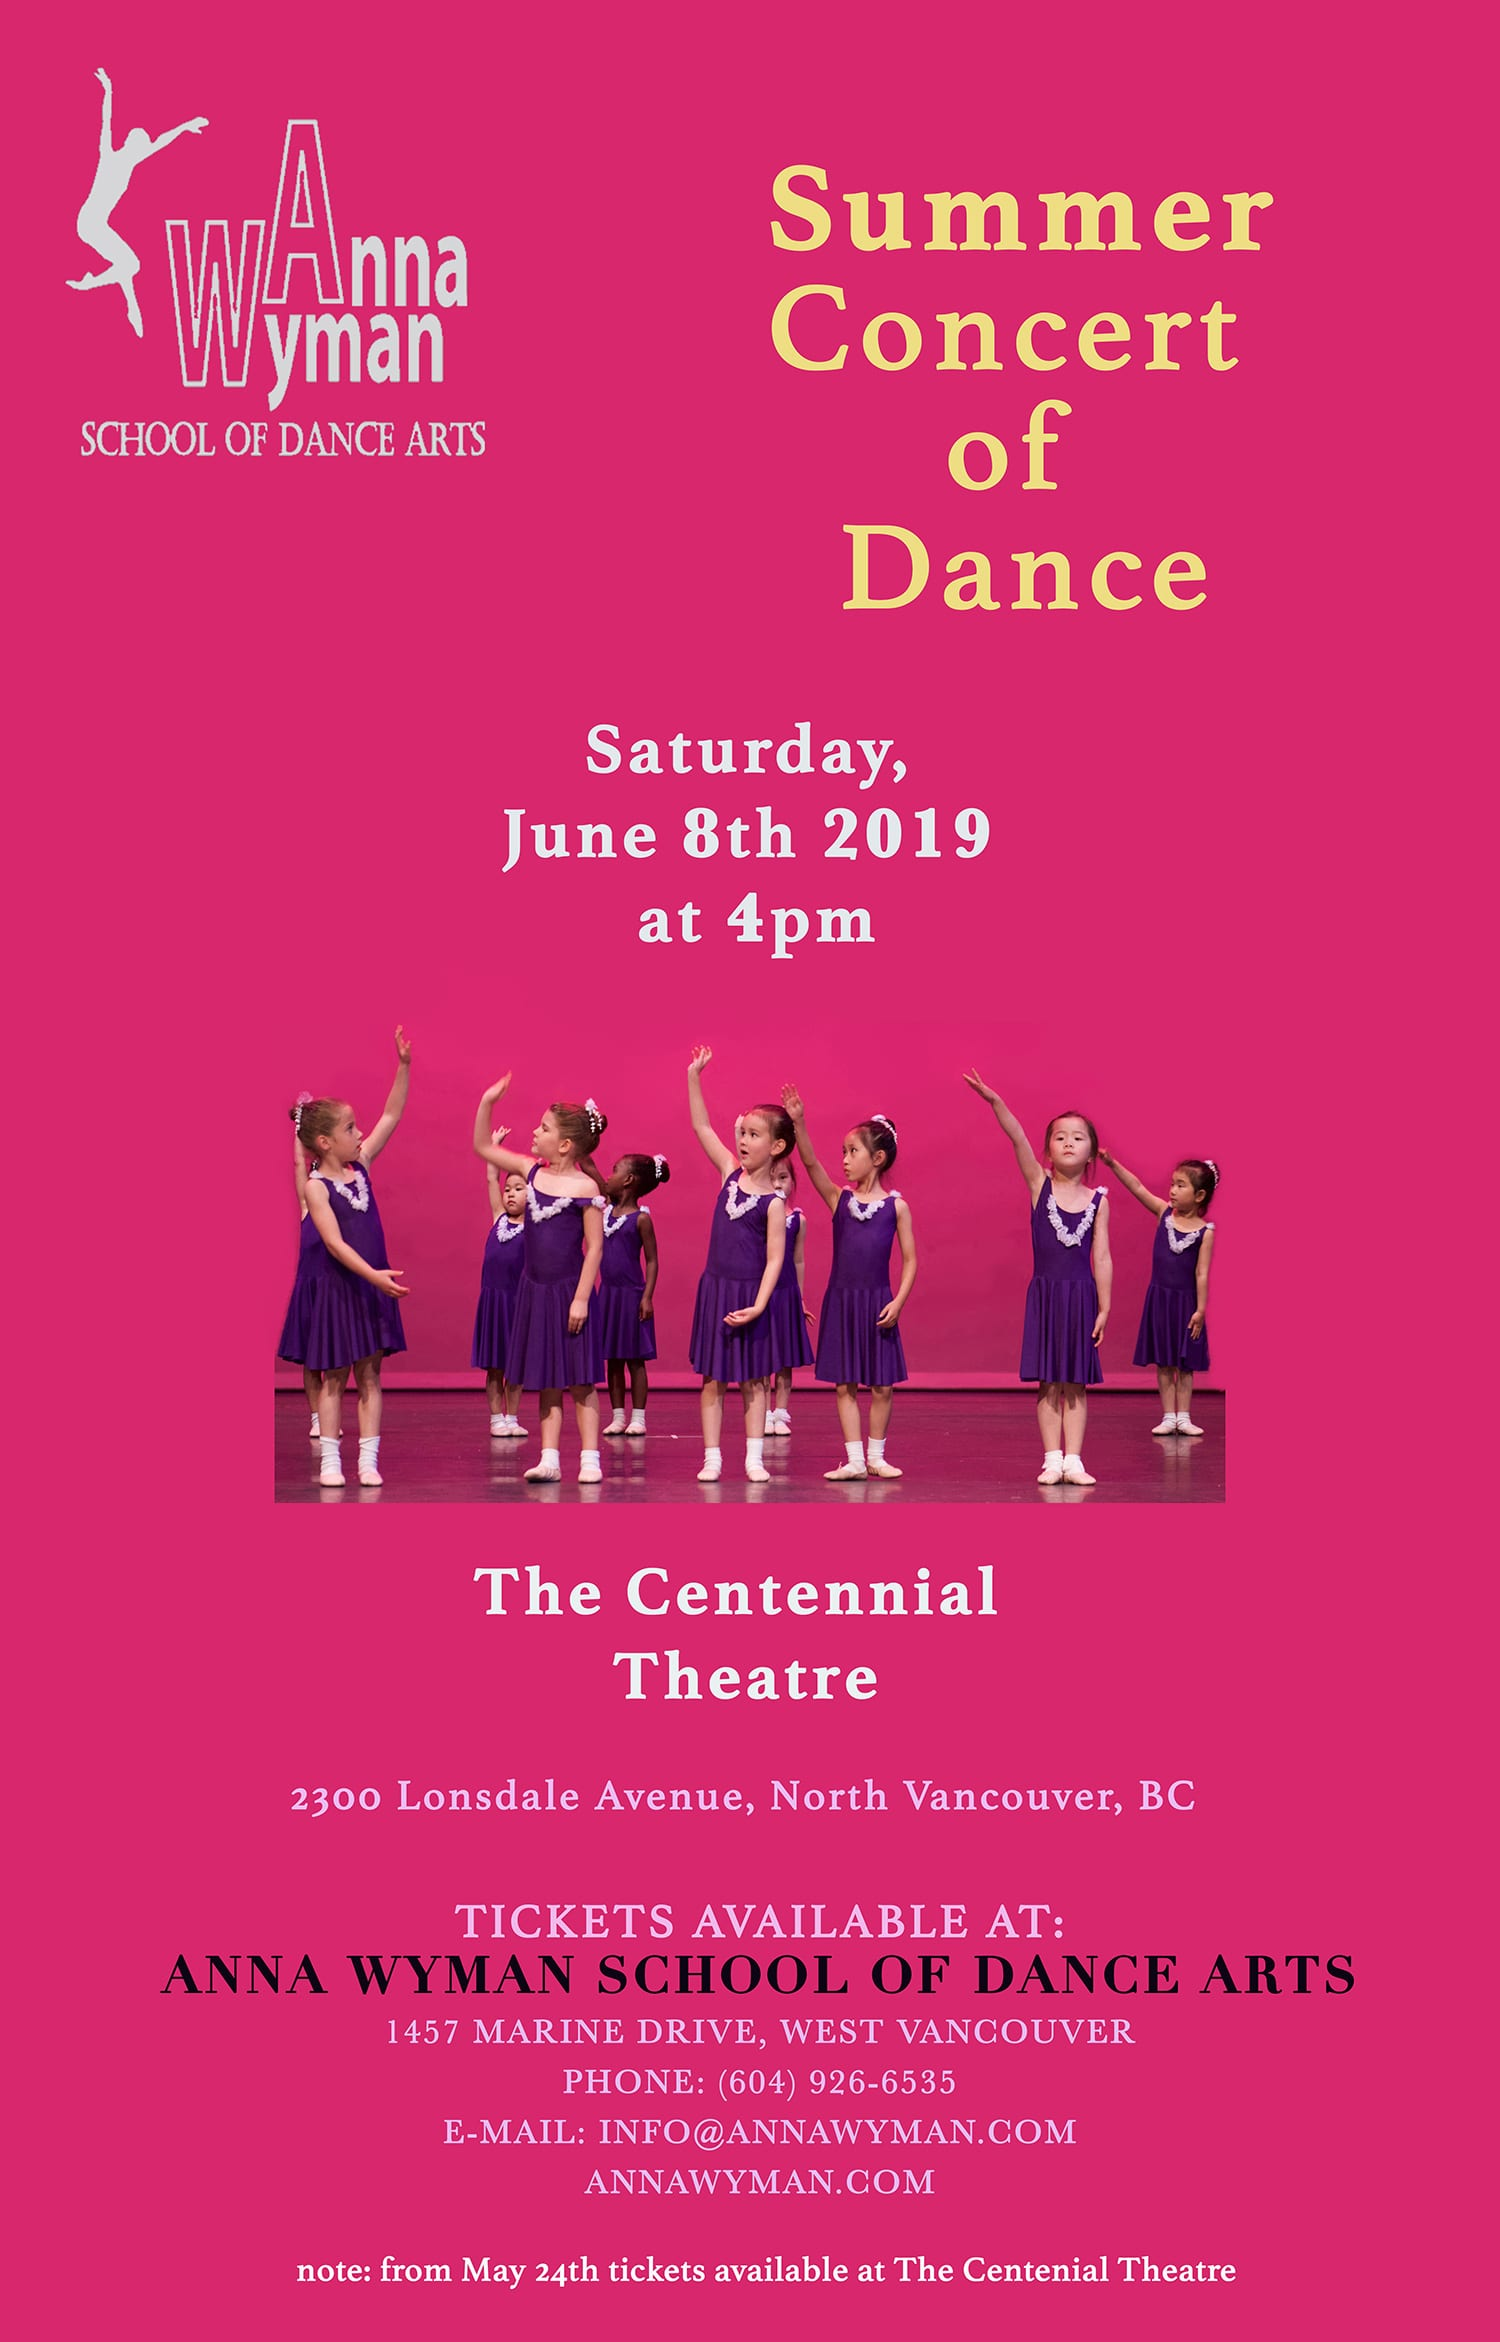 Summer Concert of Dance 2019